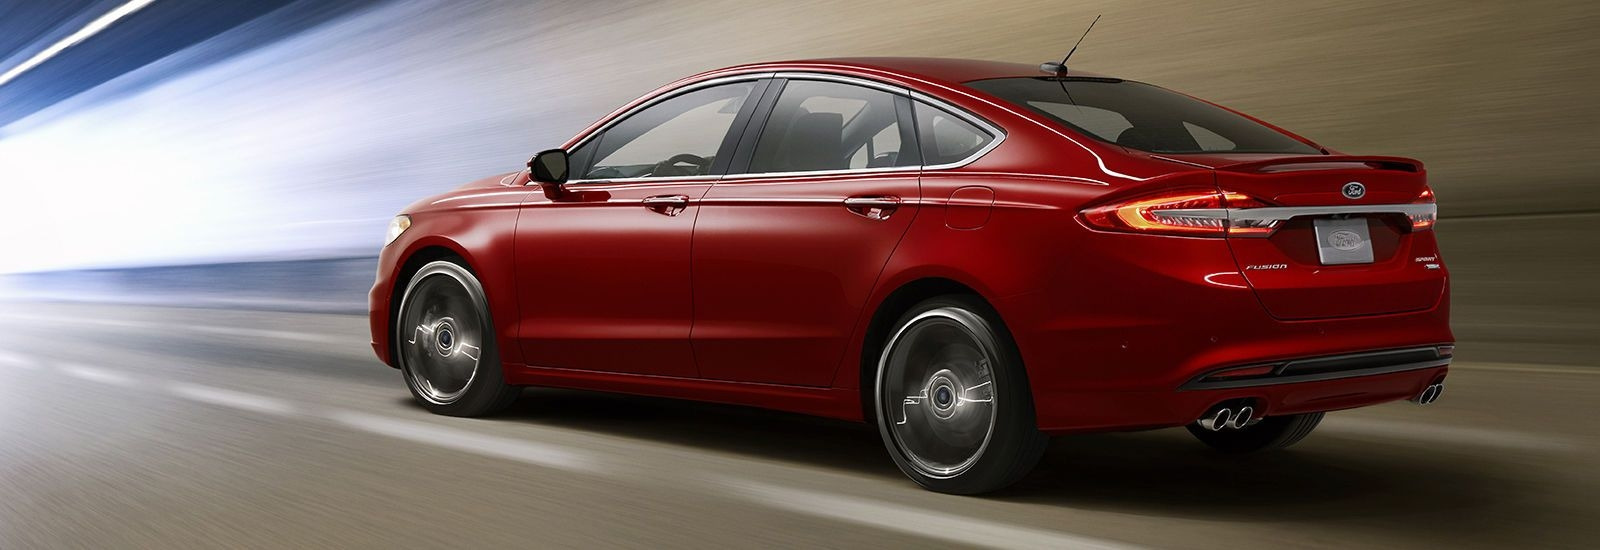 2018 Ford Mondeo Vignale Engine And Price Noorcars Com